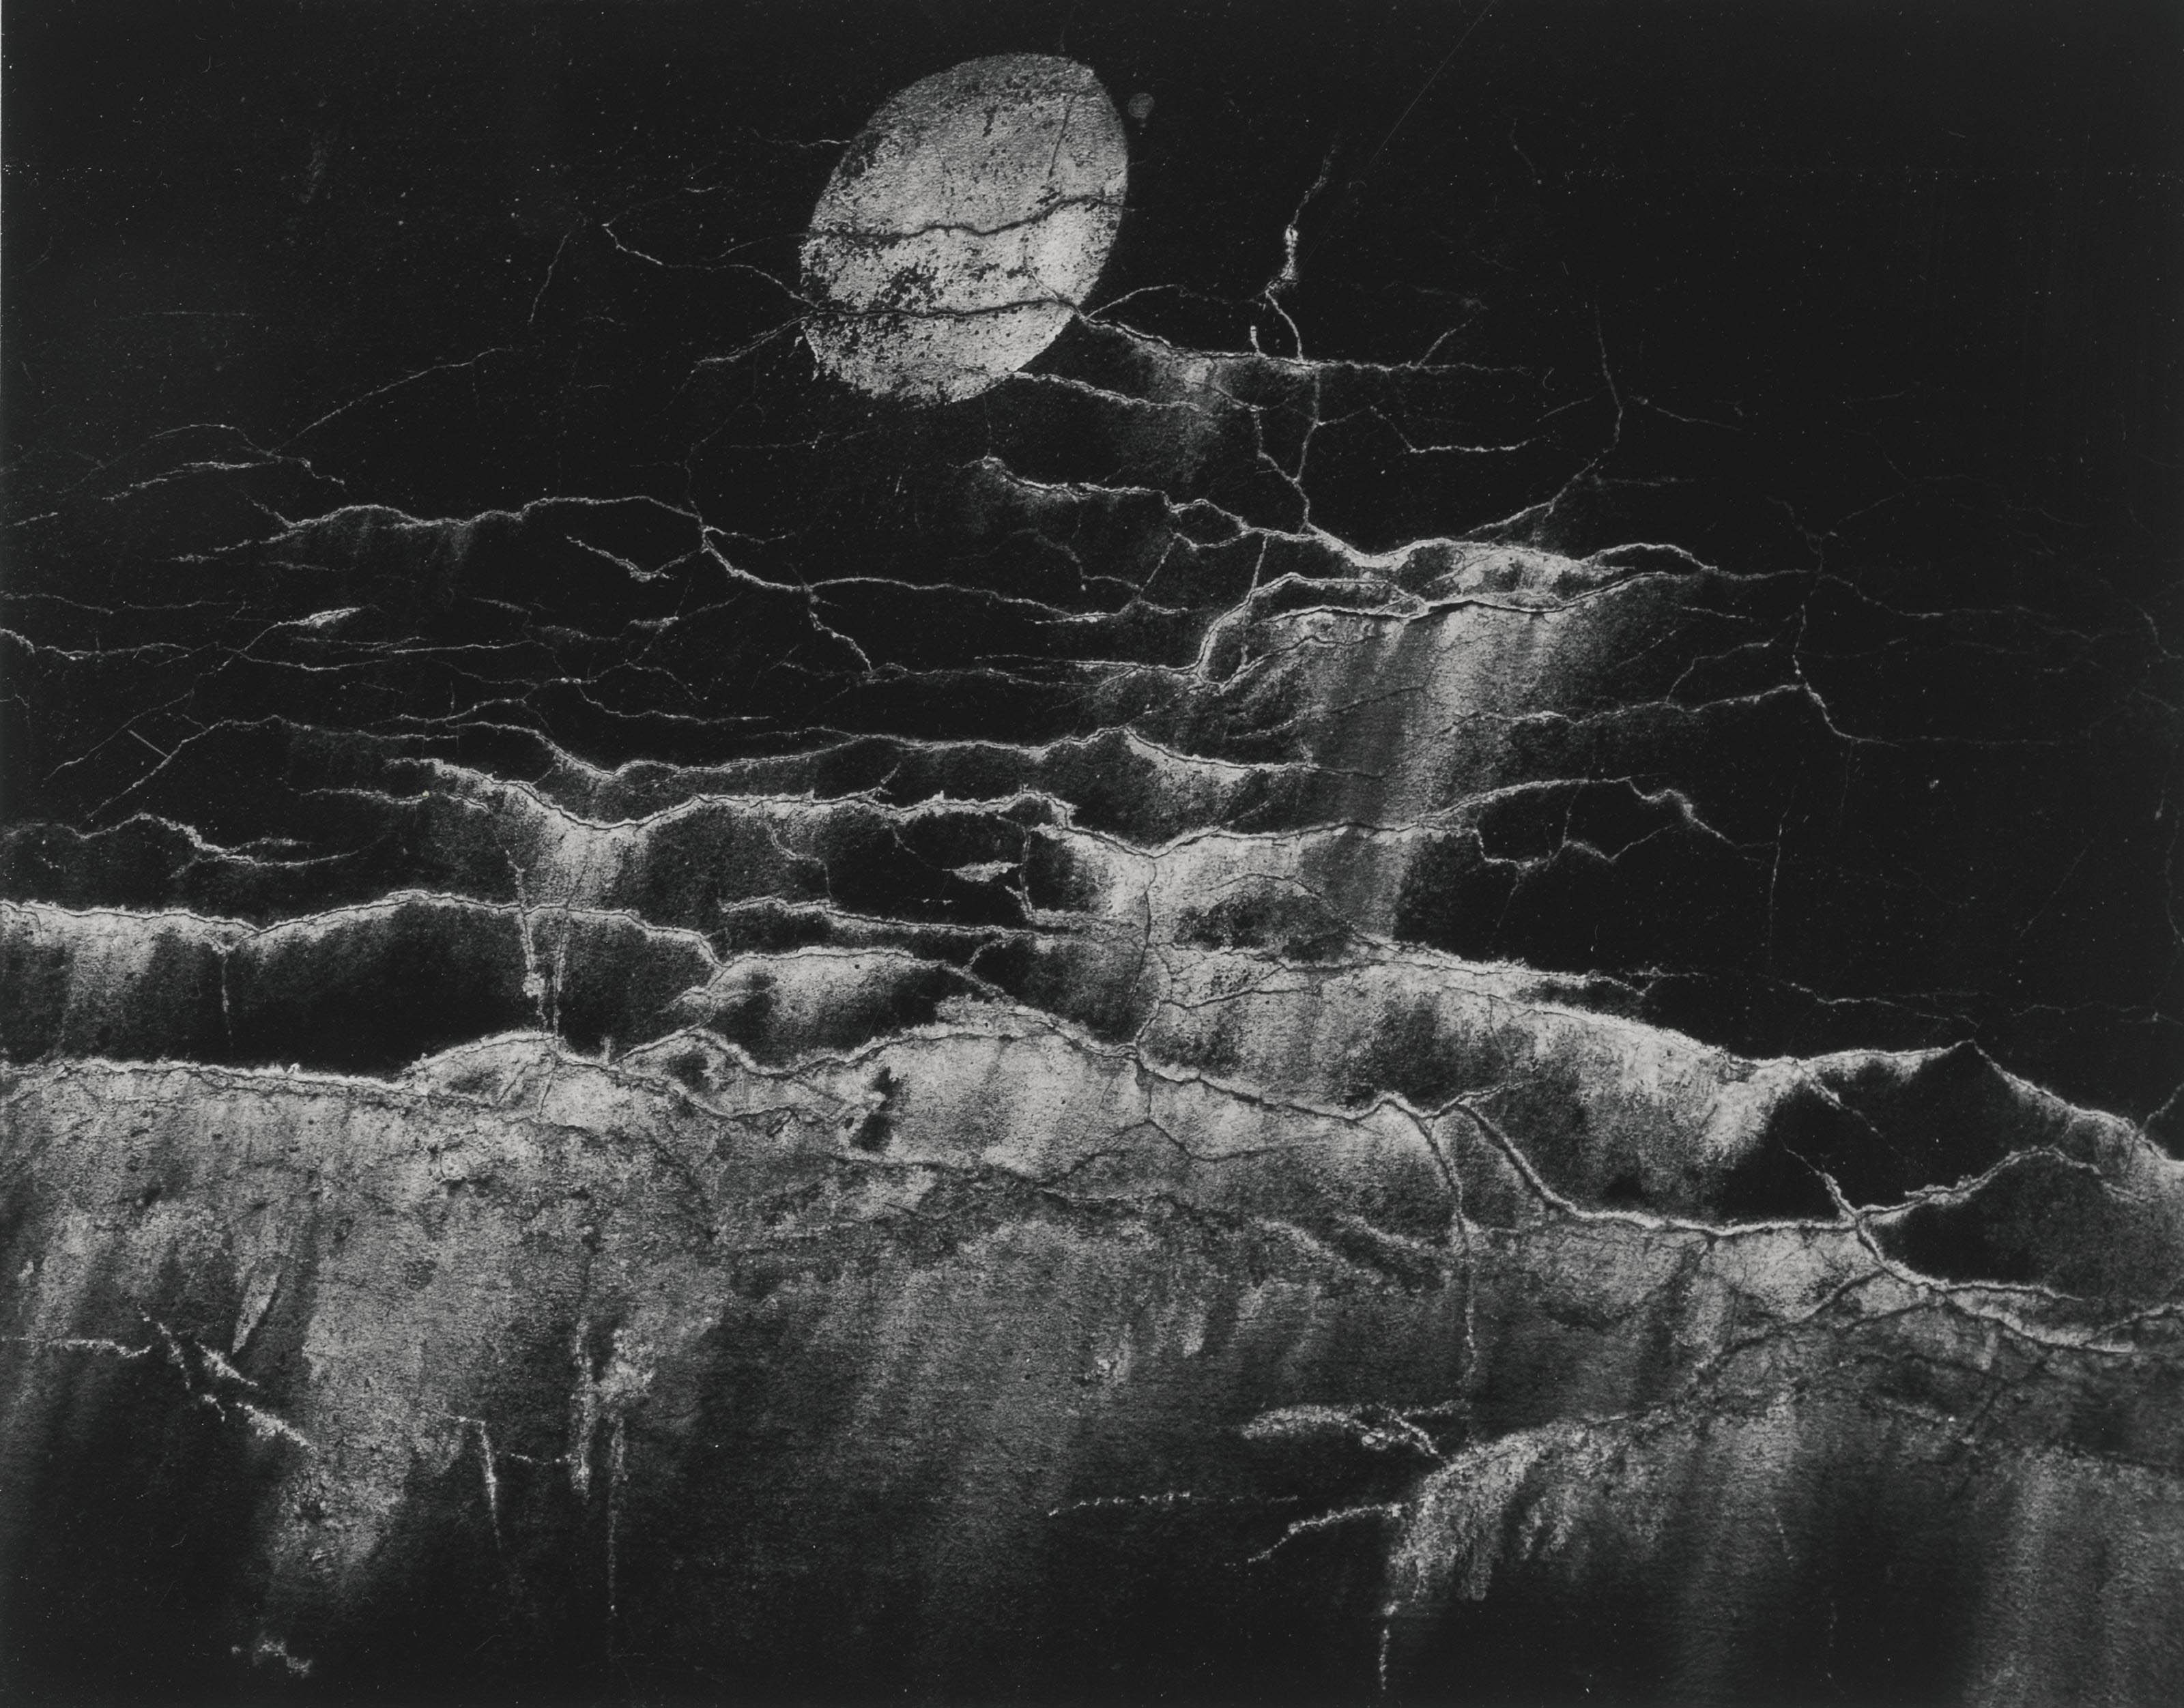 Moon and Wall Encrustations, 1964